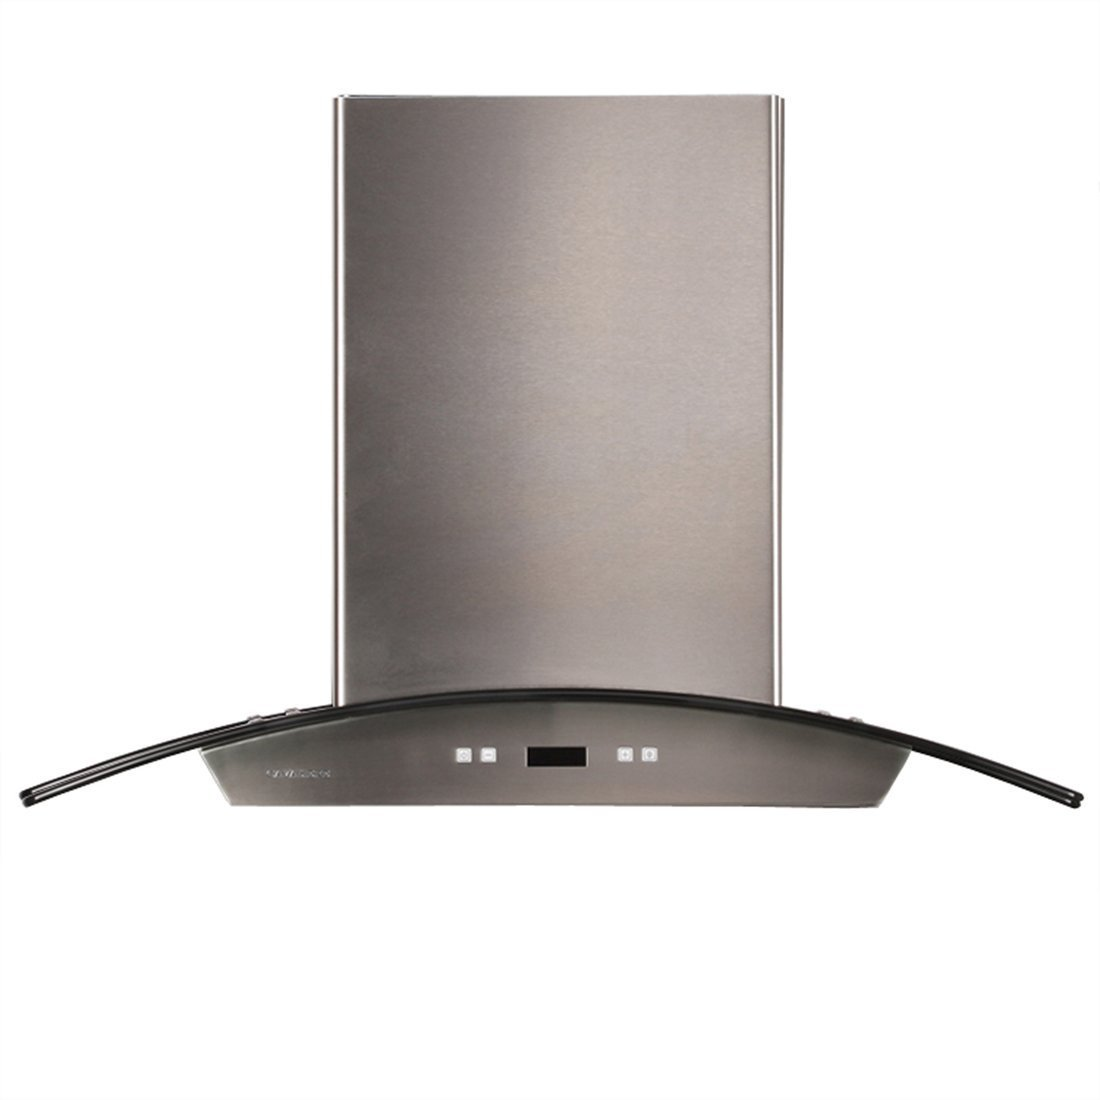 CAVALIERE 36' Island Mounted Stainless Steel / Glass Kitchen Range Hood 900 CFM SV218D-I36